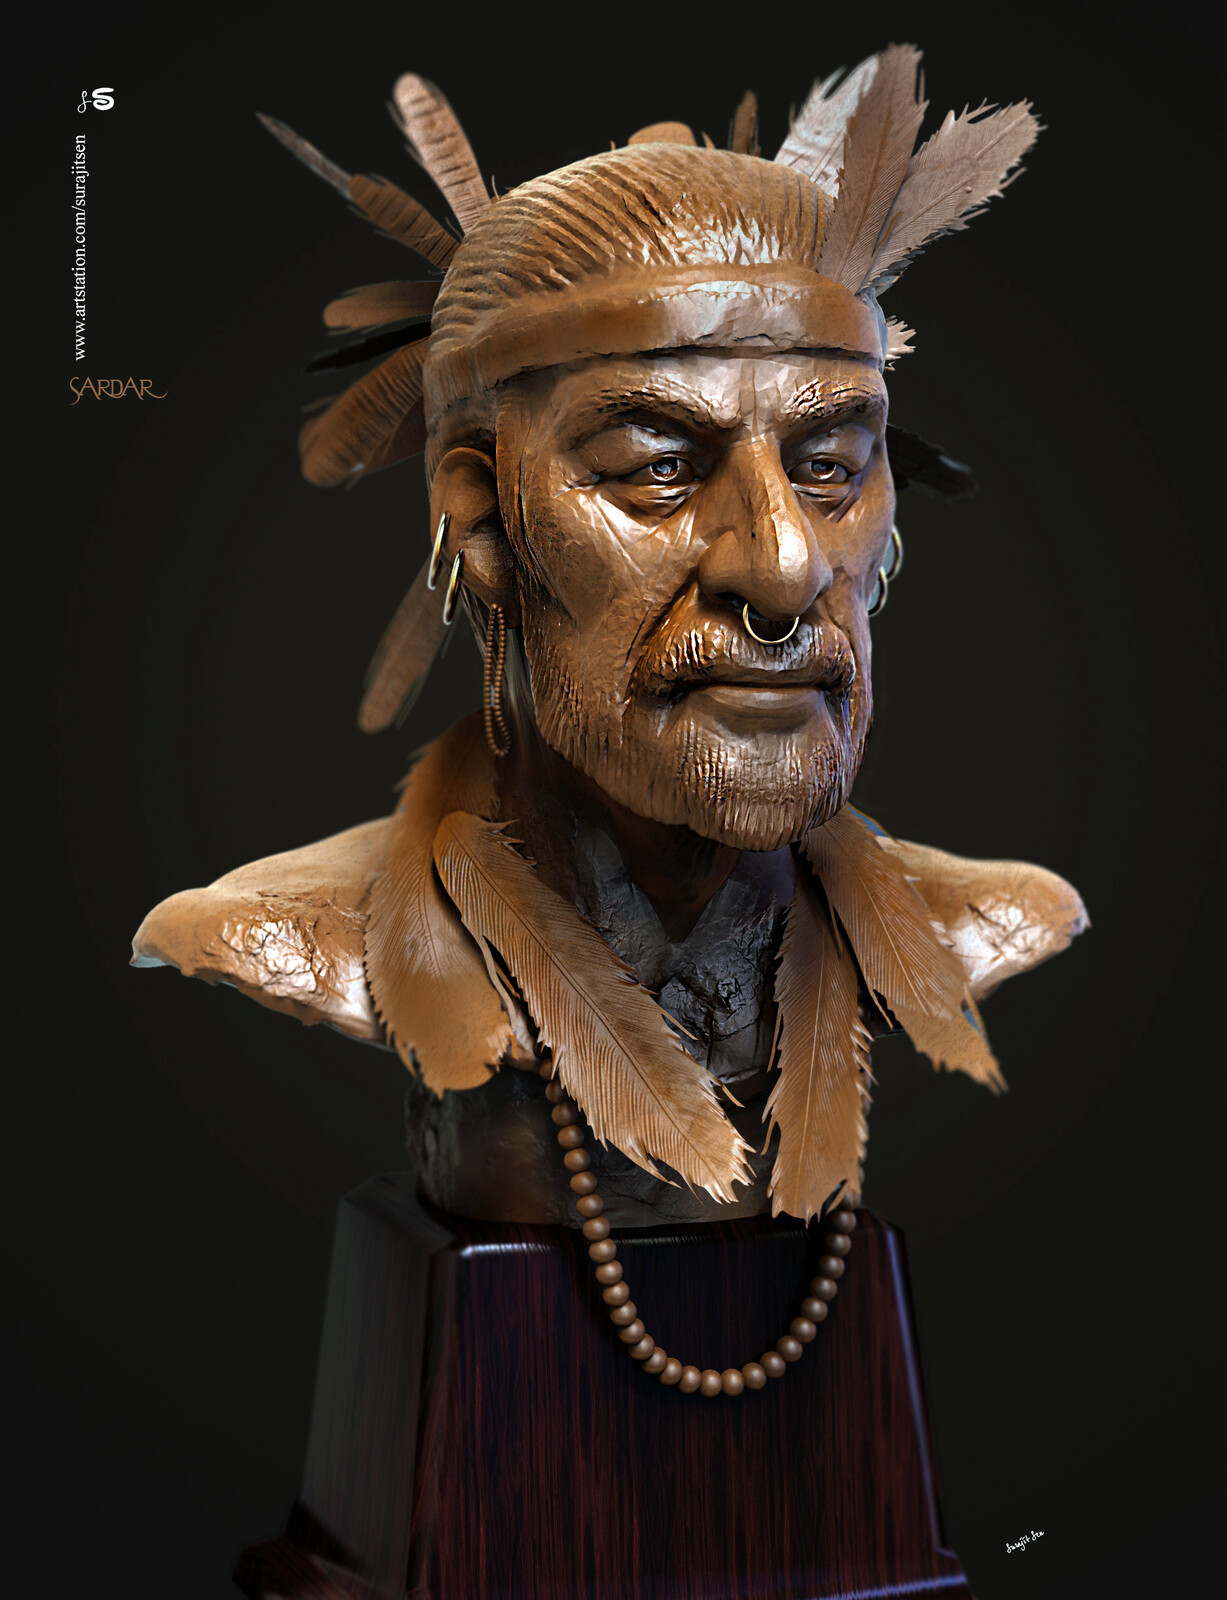 Sardar Digital Sculpture. I tried to make a form of my thoughts.